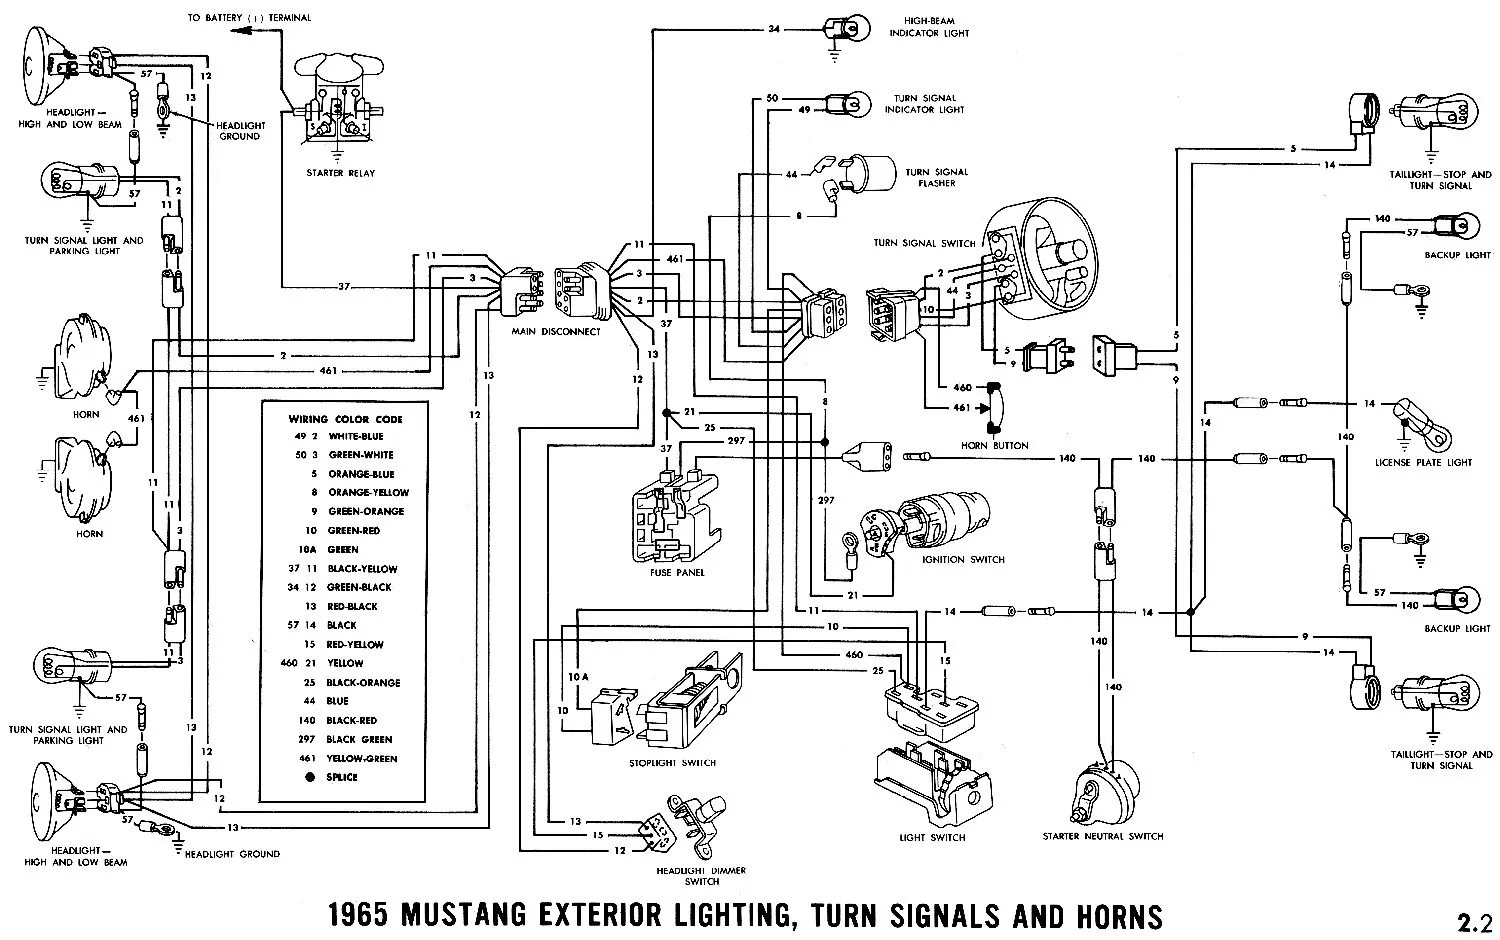 hight resolution of 1965 mustang wiring diagrams average joe restoration mustang alternator wiring diagram 65 mustang wire diagram